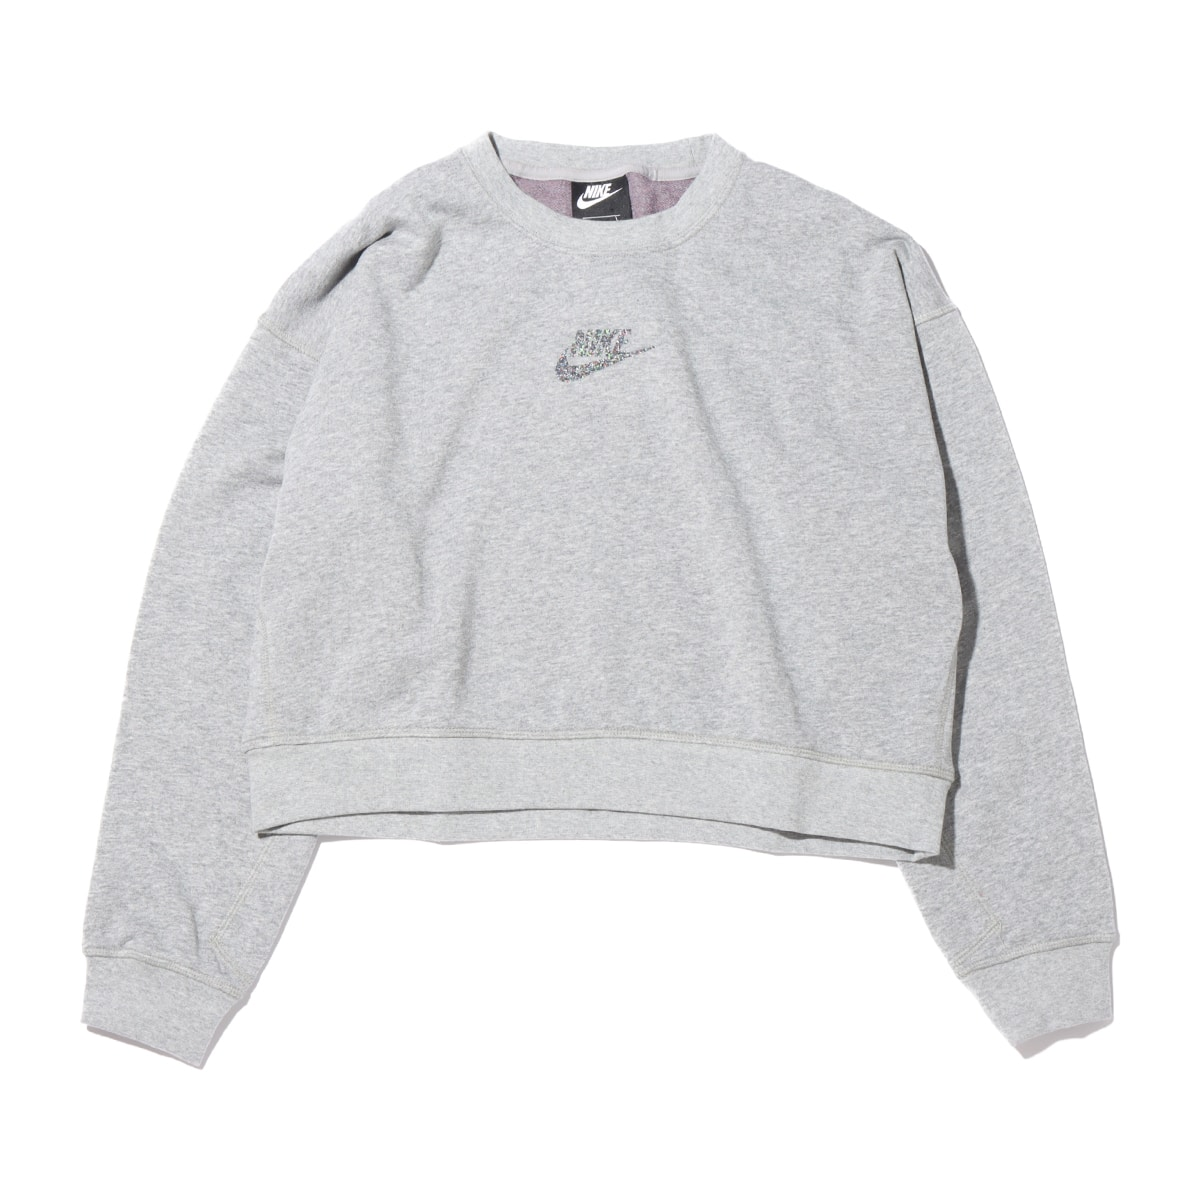 NIKE AS W NSW CREW FT M2Z DK GREY HEATHER/MULTI COLOR 20FA-I_photo_large